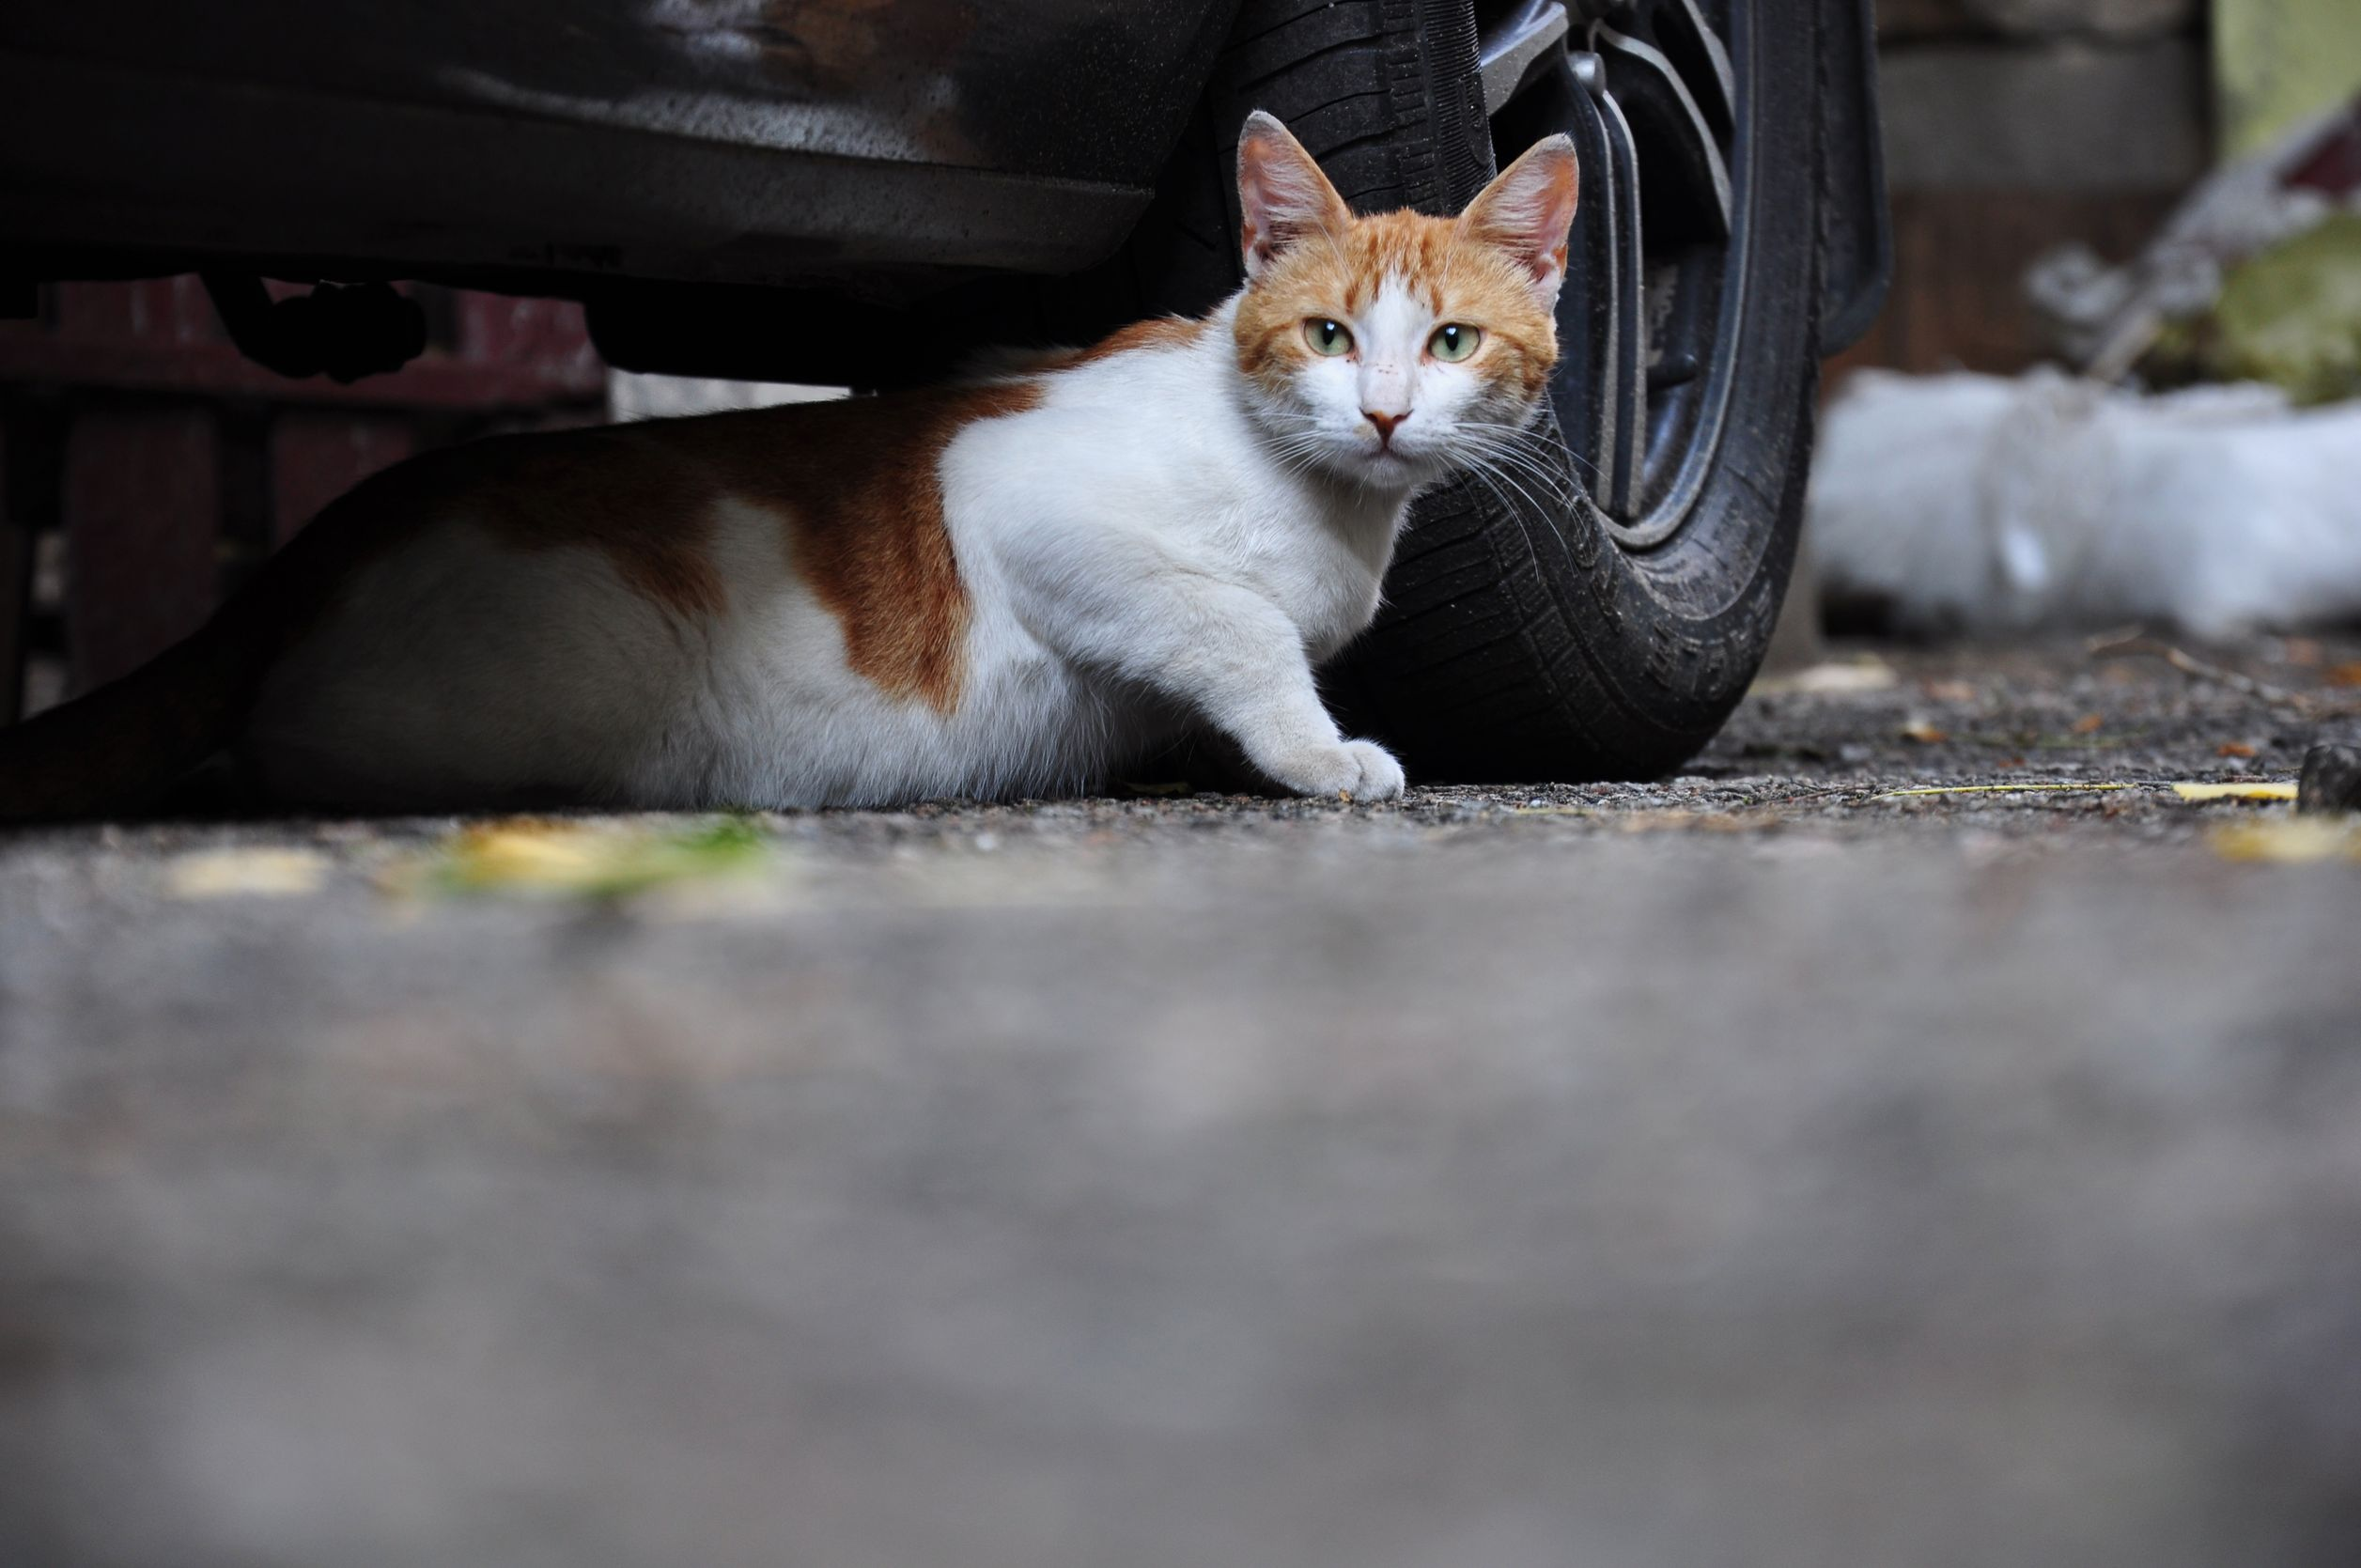 There are people who hold a prejudiced opinion towards stray cats even in  everyday circumstances.